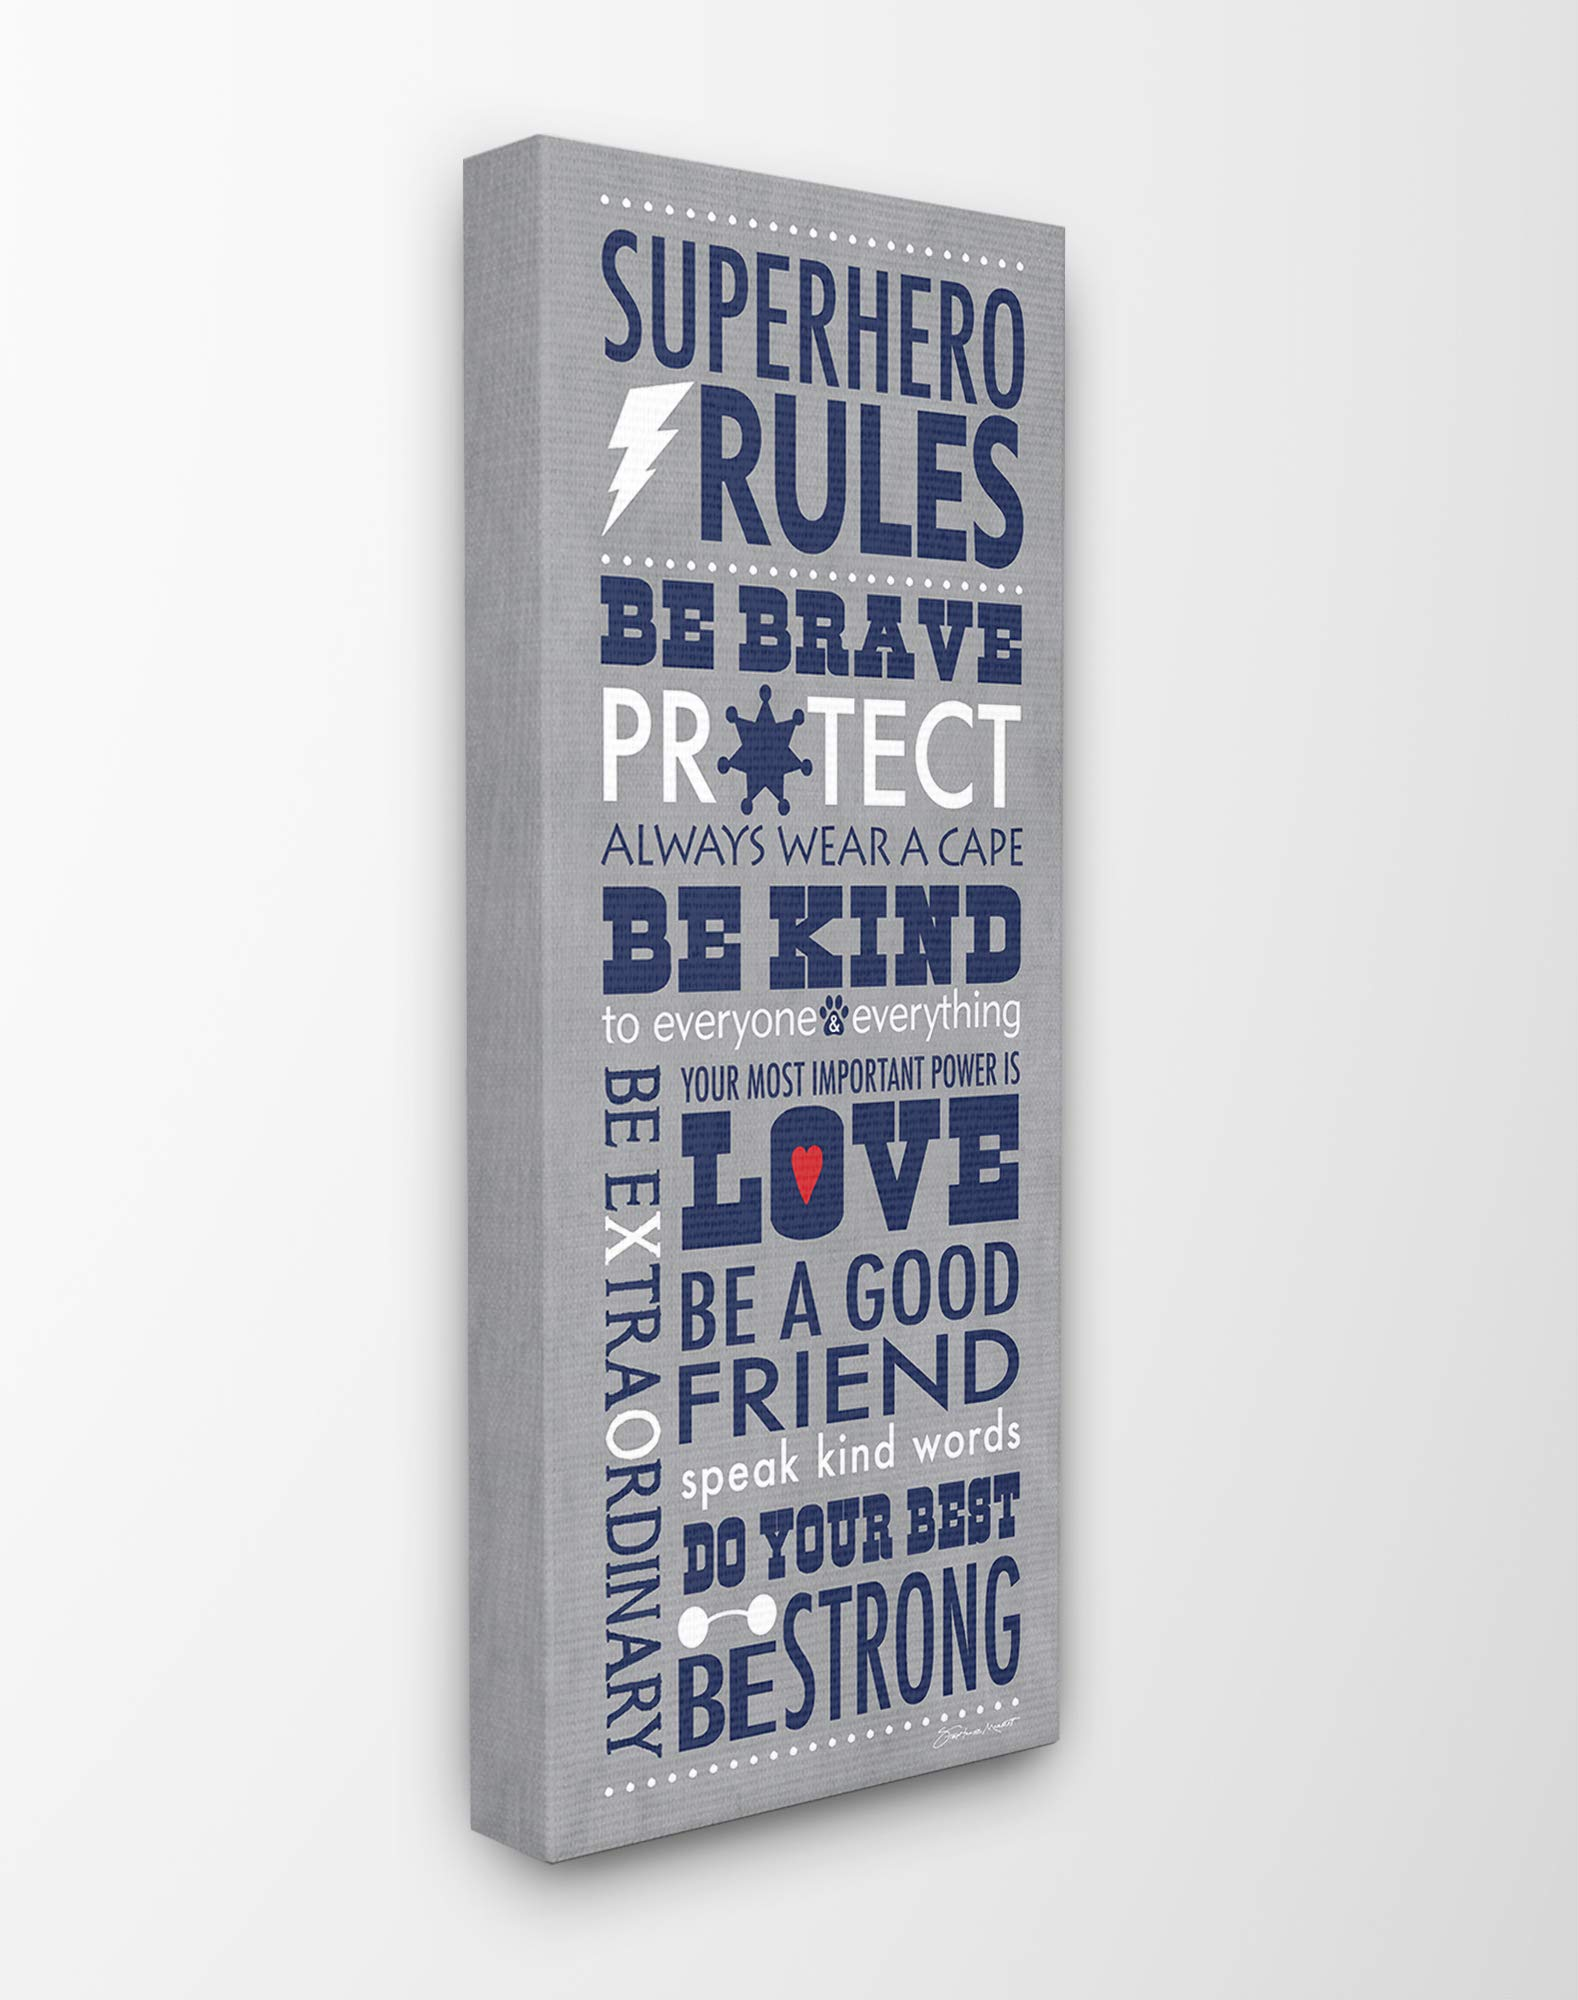 The Kids Room By Stupell Grey and Navy Superhero Rules Typography Canvas Wall Art, 10 x 24, Proudly Made in USA, Multicolor by The Kids Room by Stupell